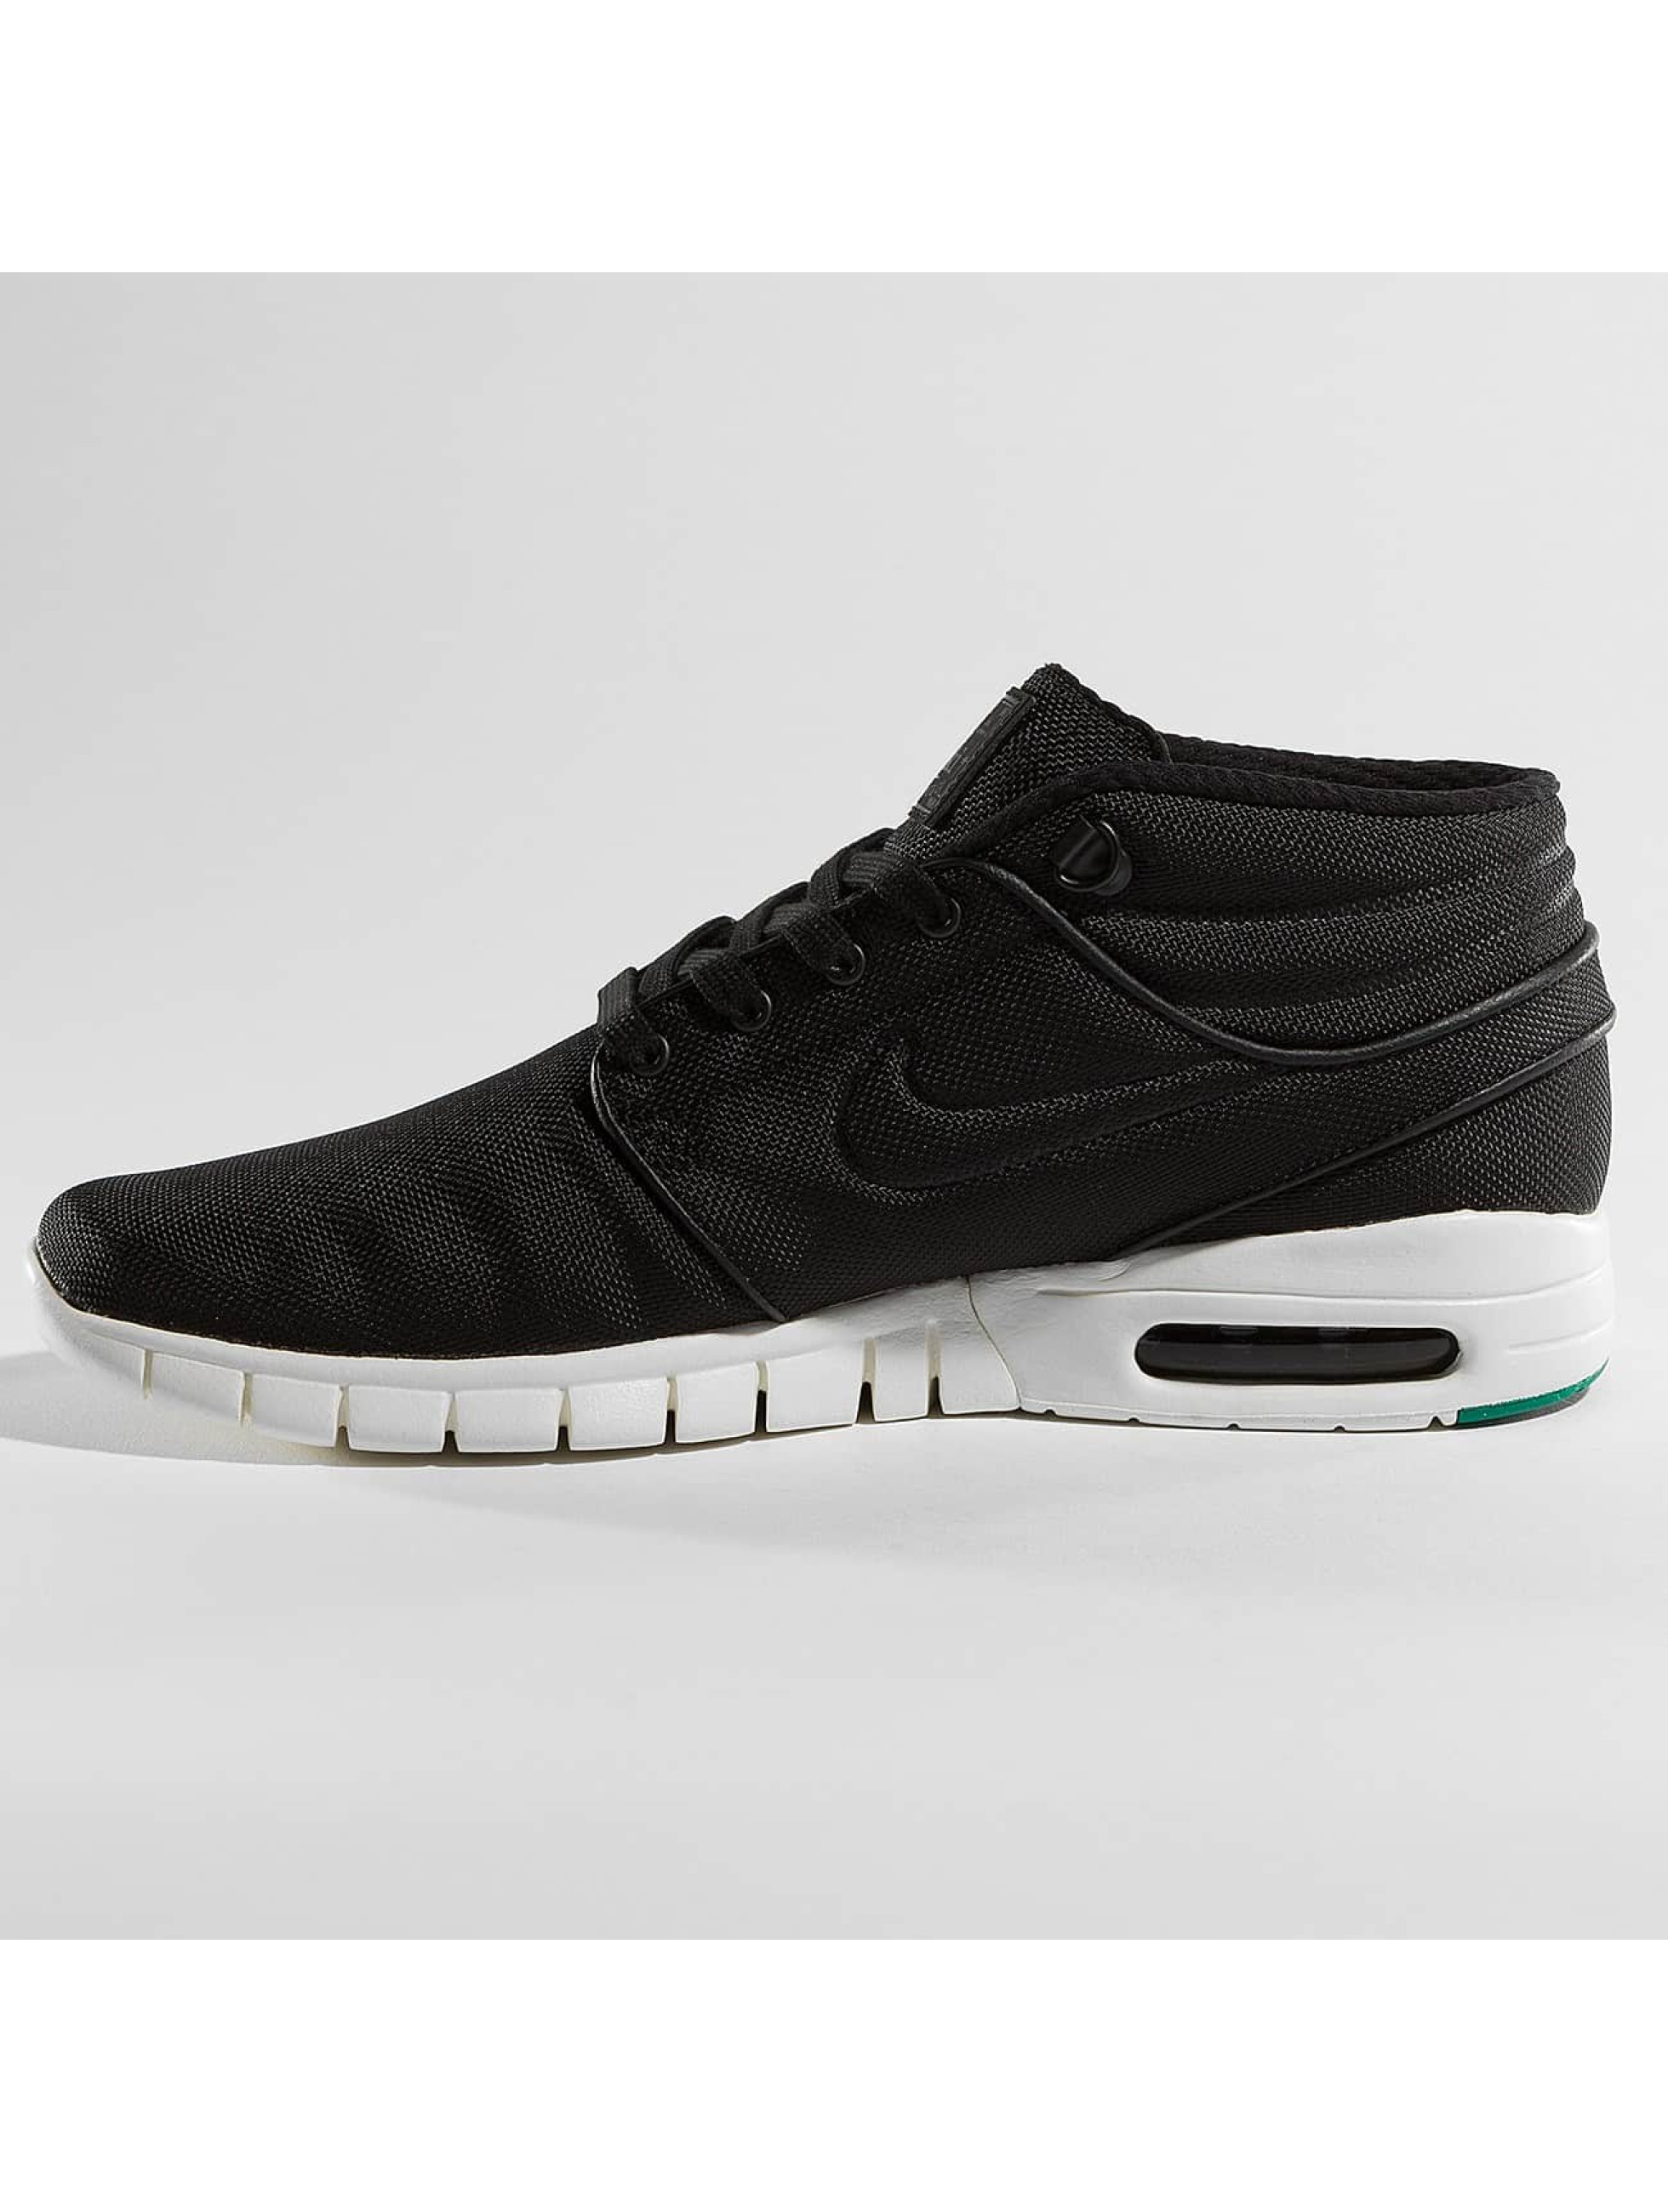 nike sb herren sneaker b stefan janoski max in schwarz 362983. Black Bedroom Furniture Sets. Home Design Ideas